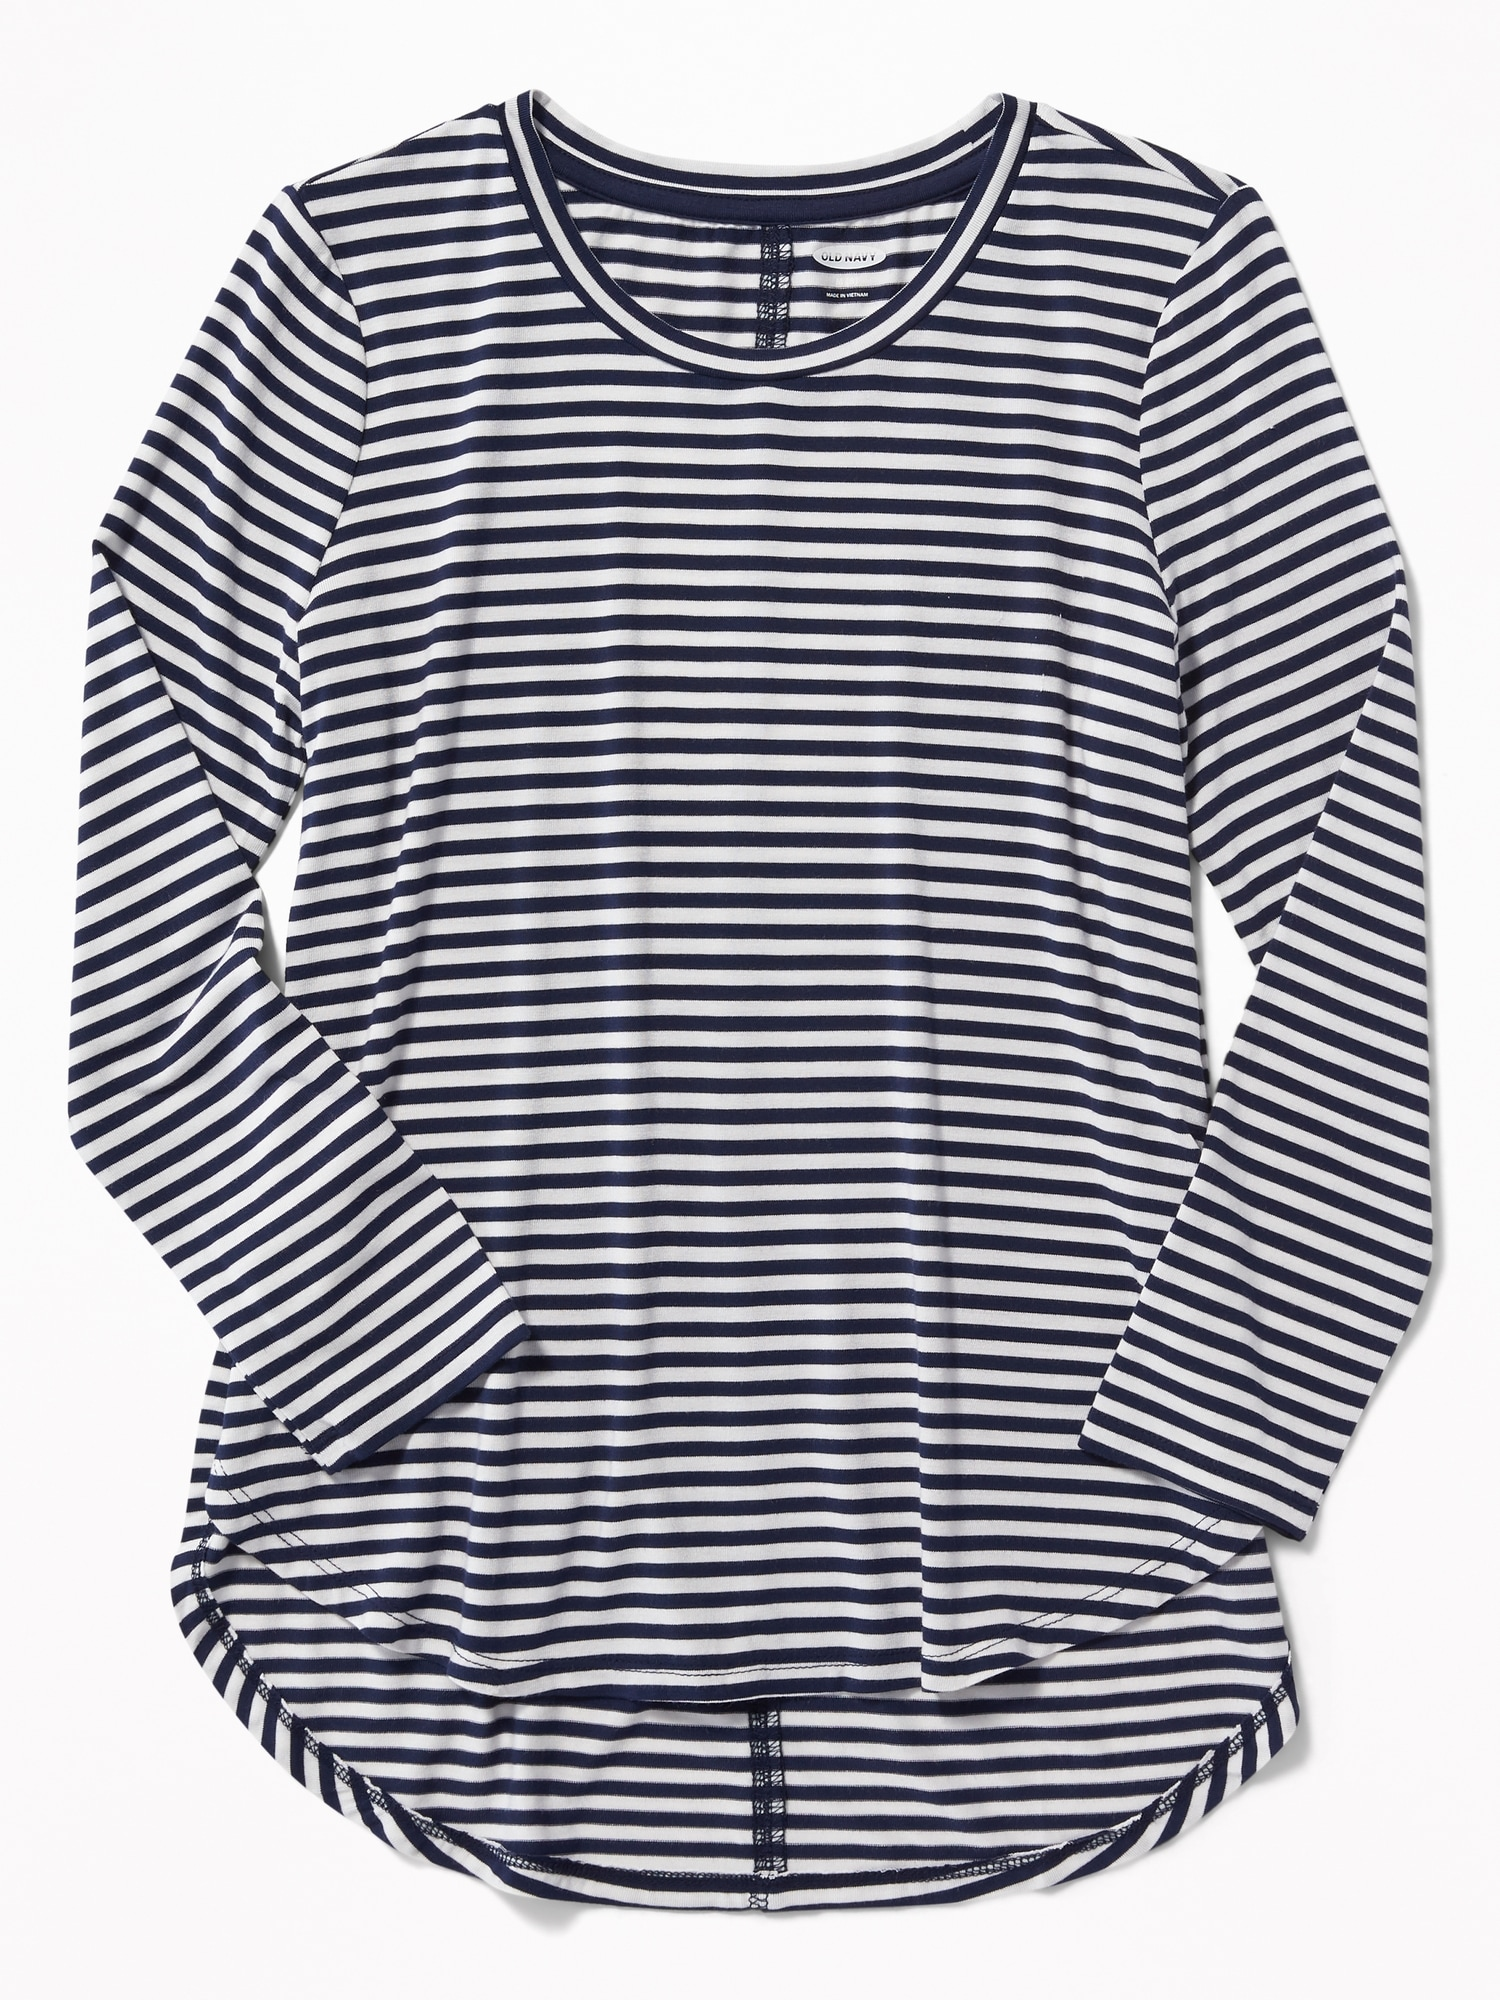 d310b288418d Black And White Striped T Shirt Old Navy | Top Mode Depot